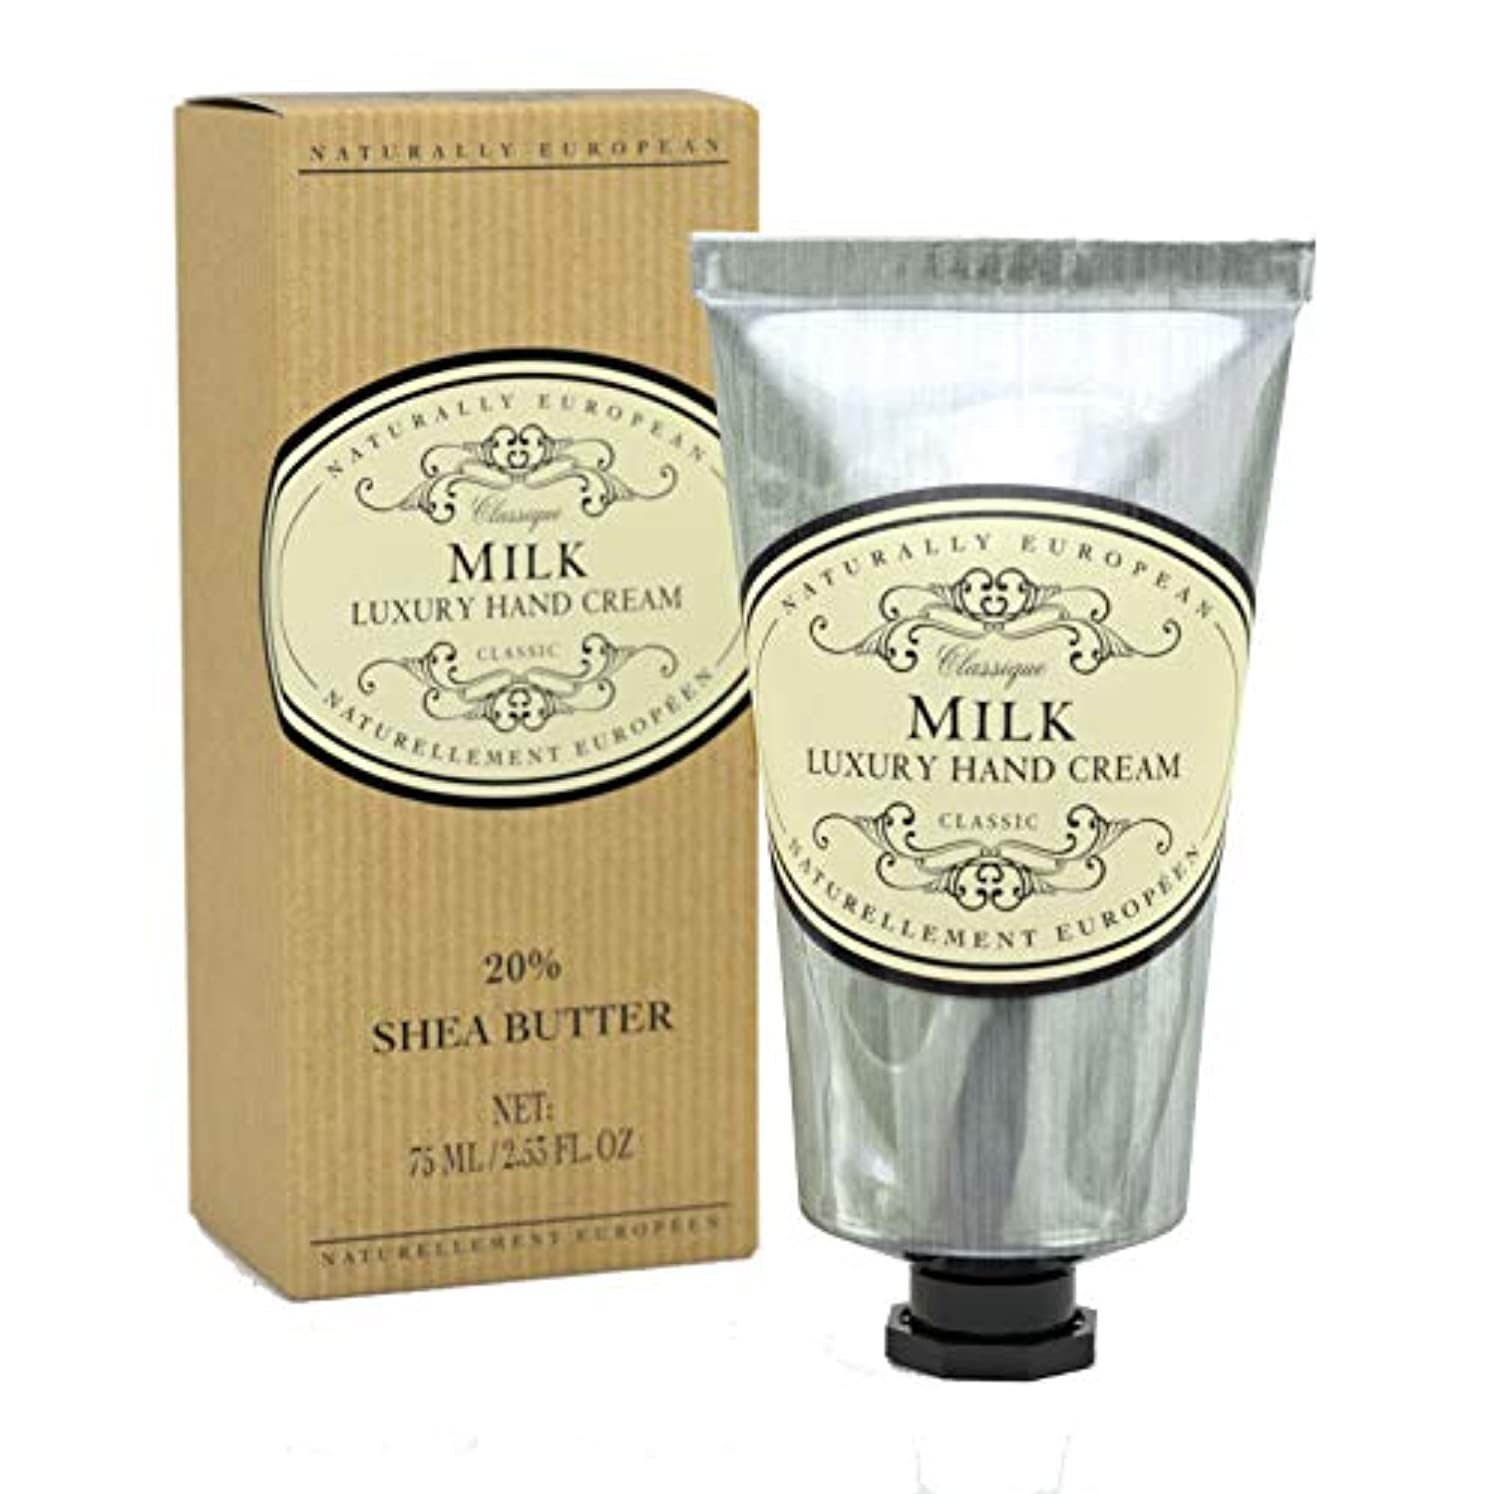 メディック湿ったモノグラフNaturally European Milk Luxury Hand and Nail Cream 75ml